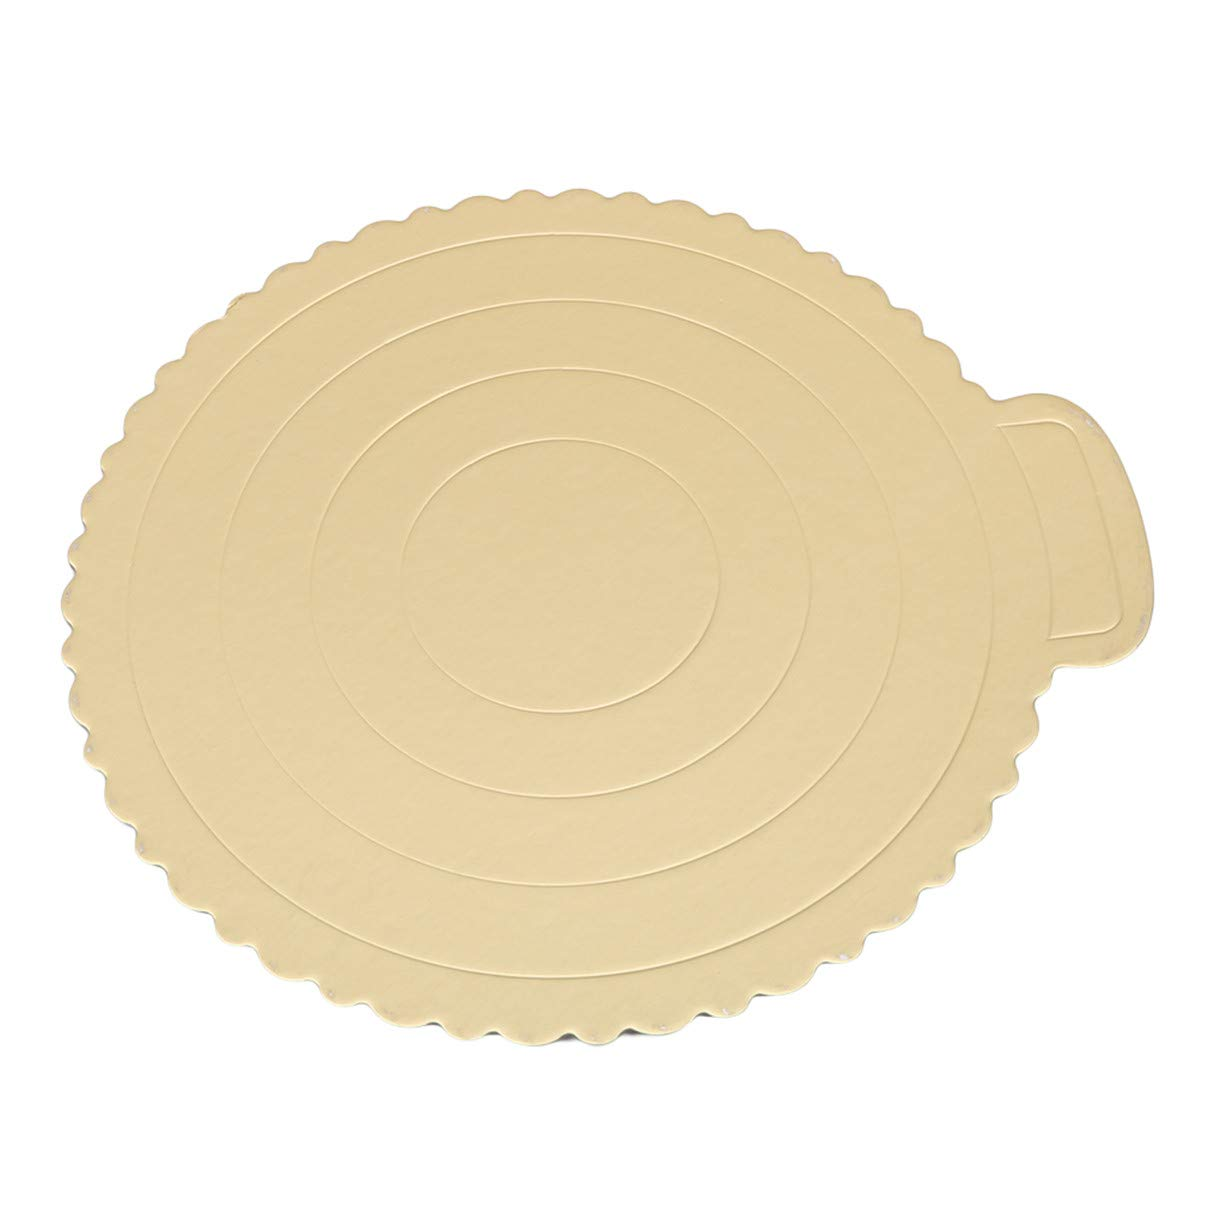 Essencedelight Cake Boards Round Cake Pie Bakery Paperboard Pads DIY Baking Food Paper Pad Bakeware & Accessories for Party Wedding Supplies